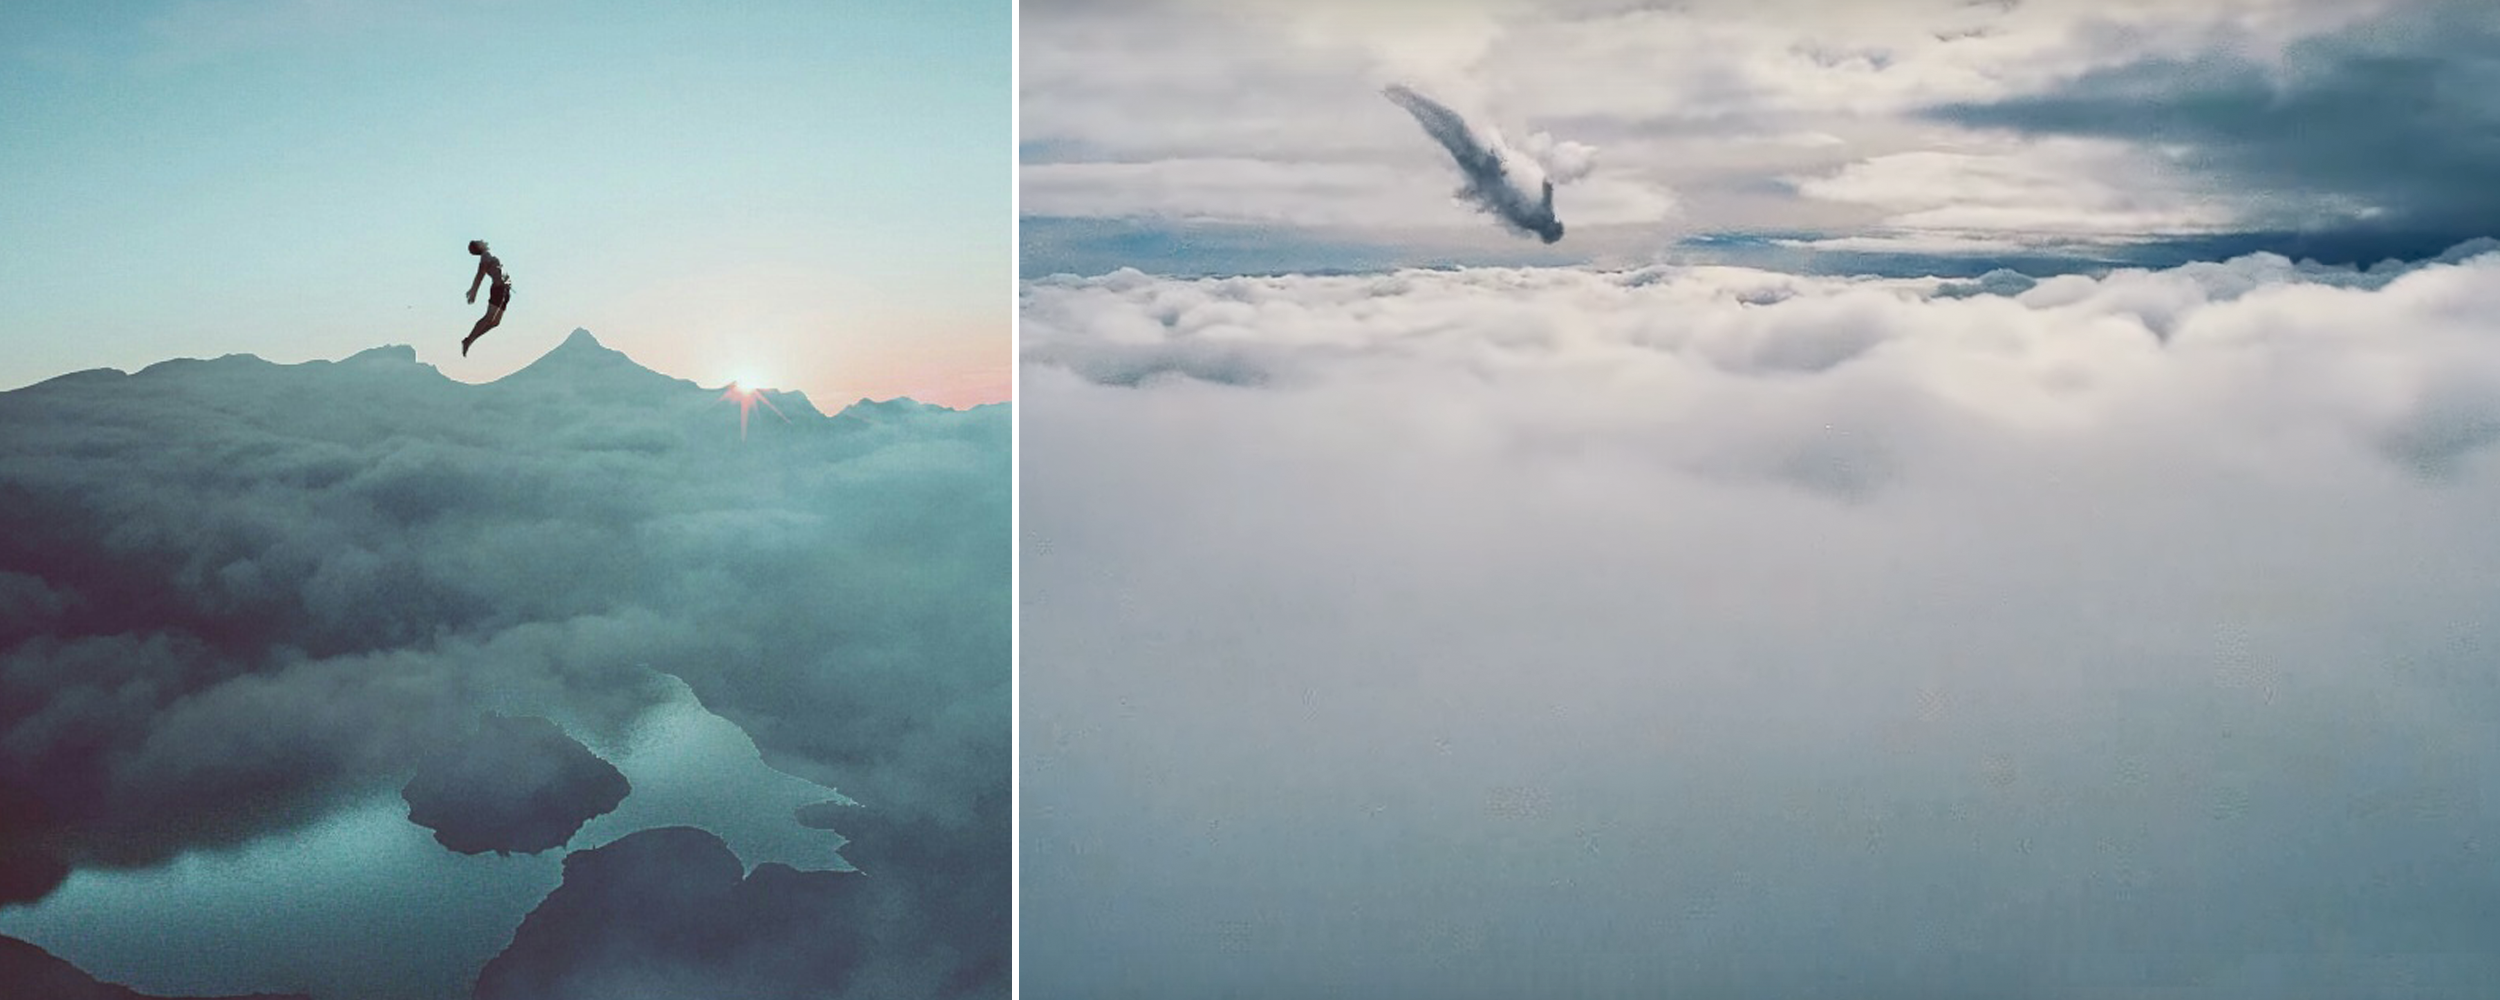 Left by @bzein on PicsArt; Right from Coldplay's Up & Up music video